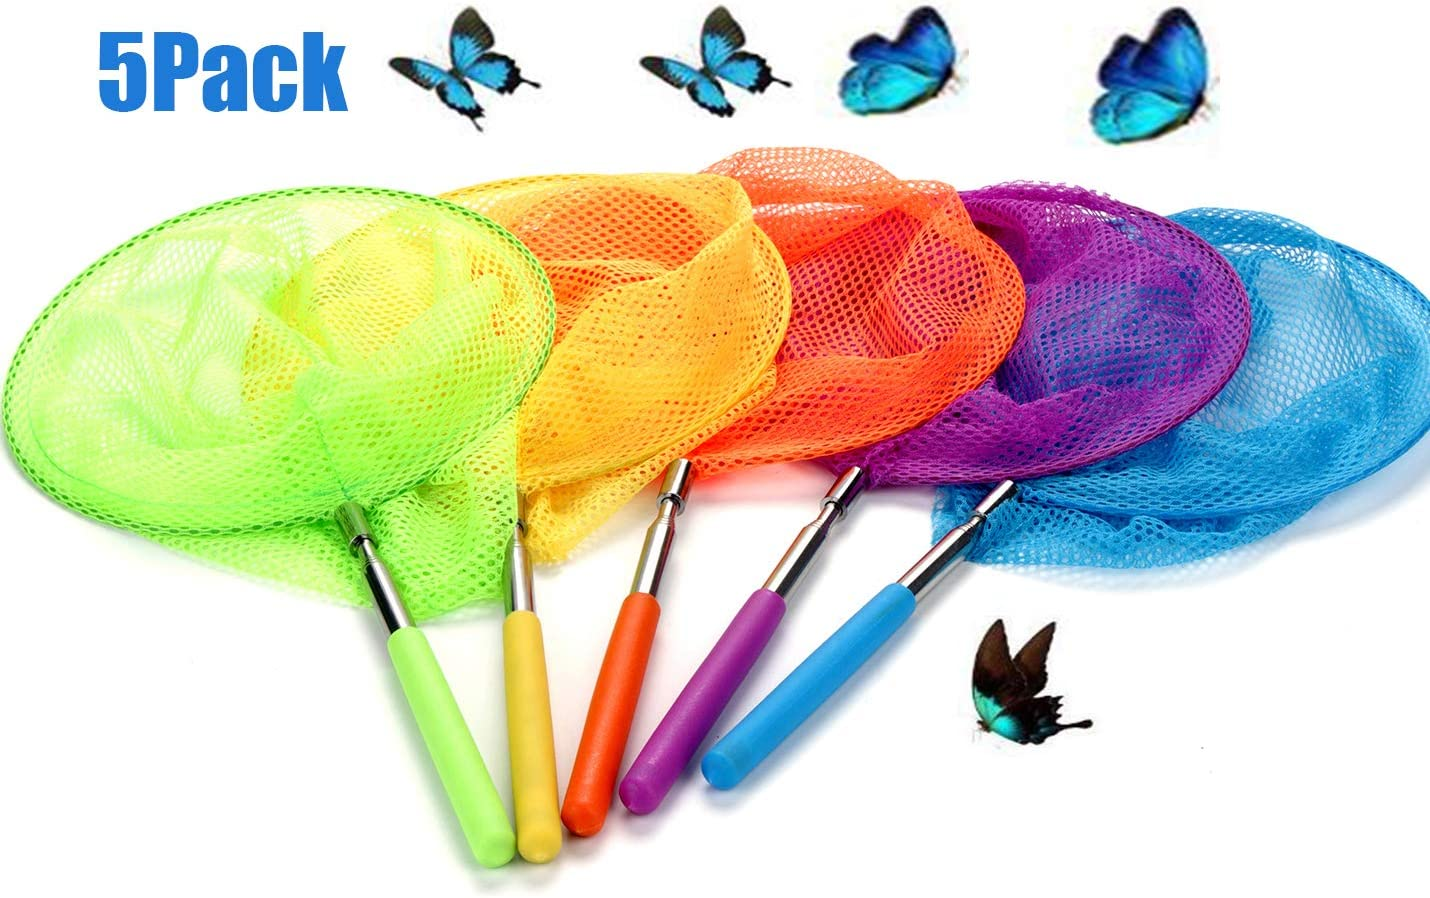 5 Pack JOCHA Telescopic Butterfly Fishing Nets Great for Kids Catching Insects Bugs Fish Caterpillar Ladybird Nets Outdoor Tools Colorful Extendable 34 Inch